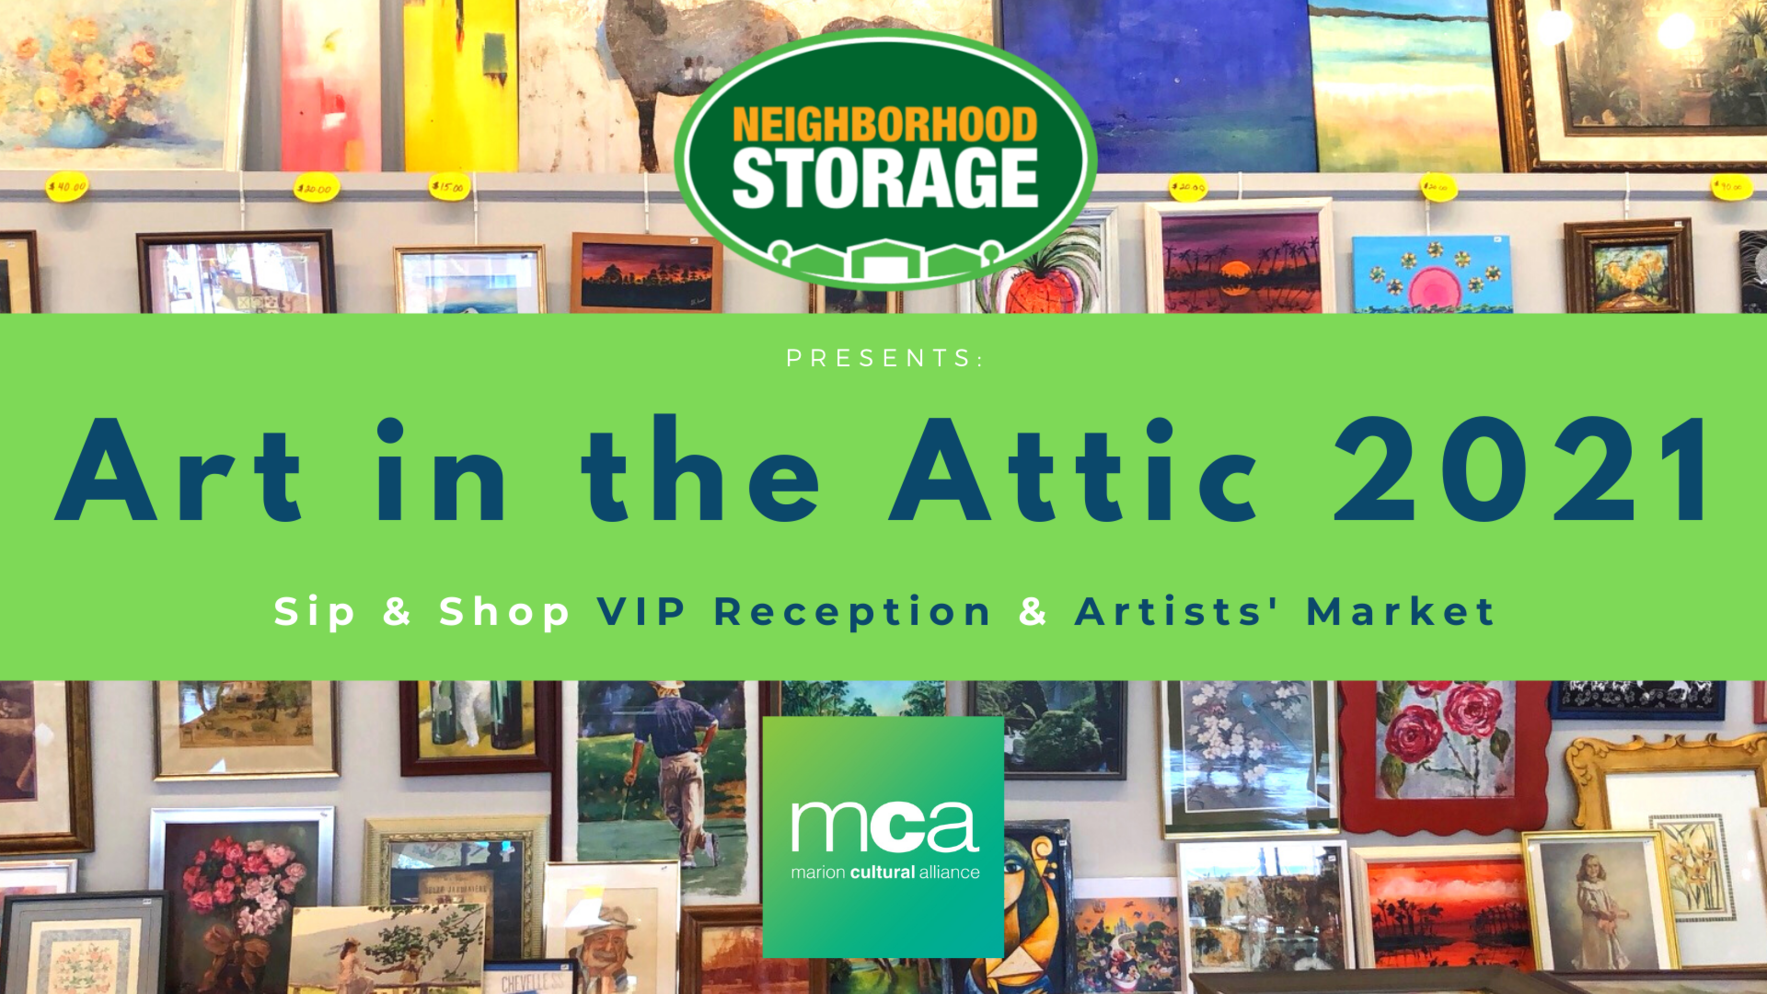 Sip & Shop - Art in the Attic 2021 VIP Party & Artists' Market image